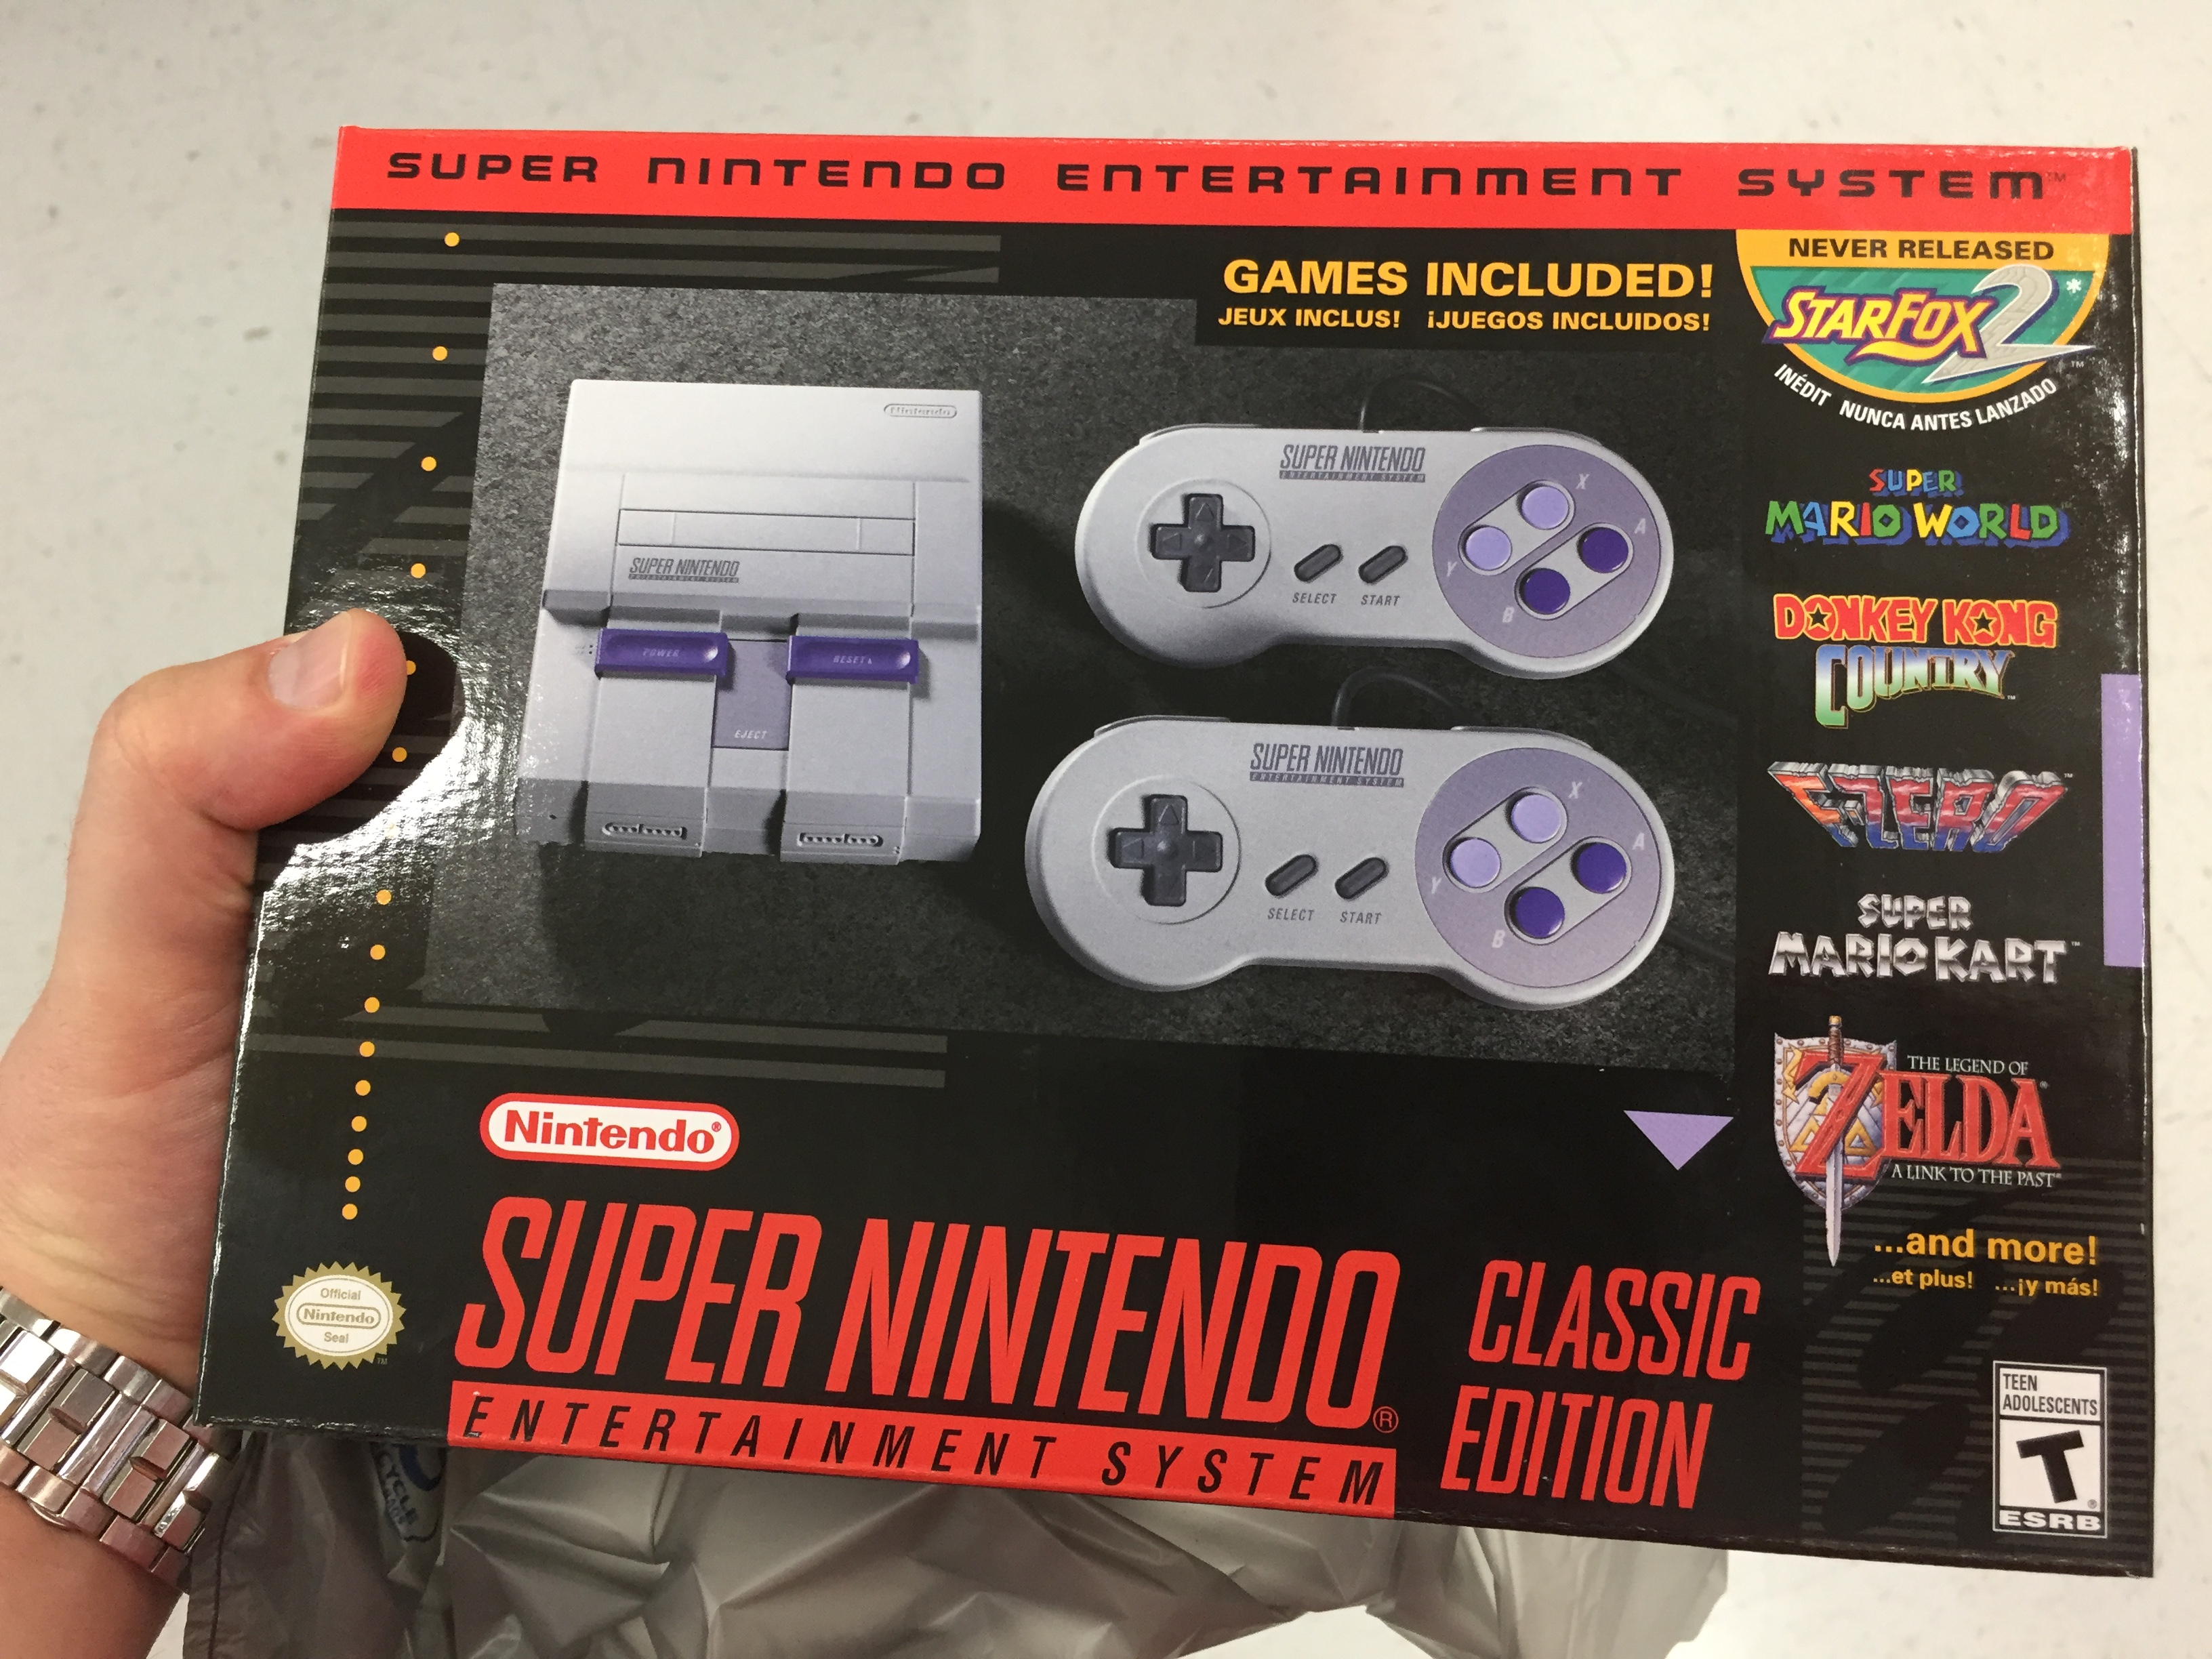 Joygasm Podcast Ep. 40: SNES Classic Purchase Experience, Joygasm Website Launched, & More